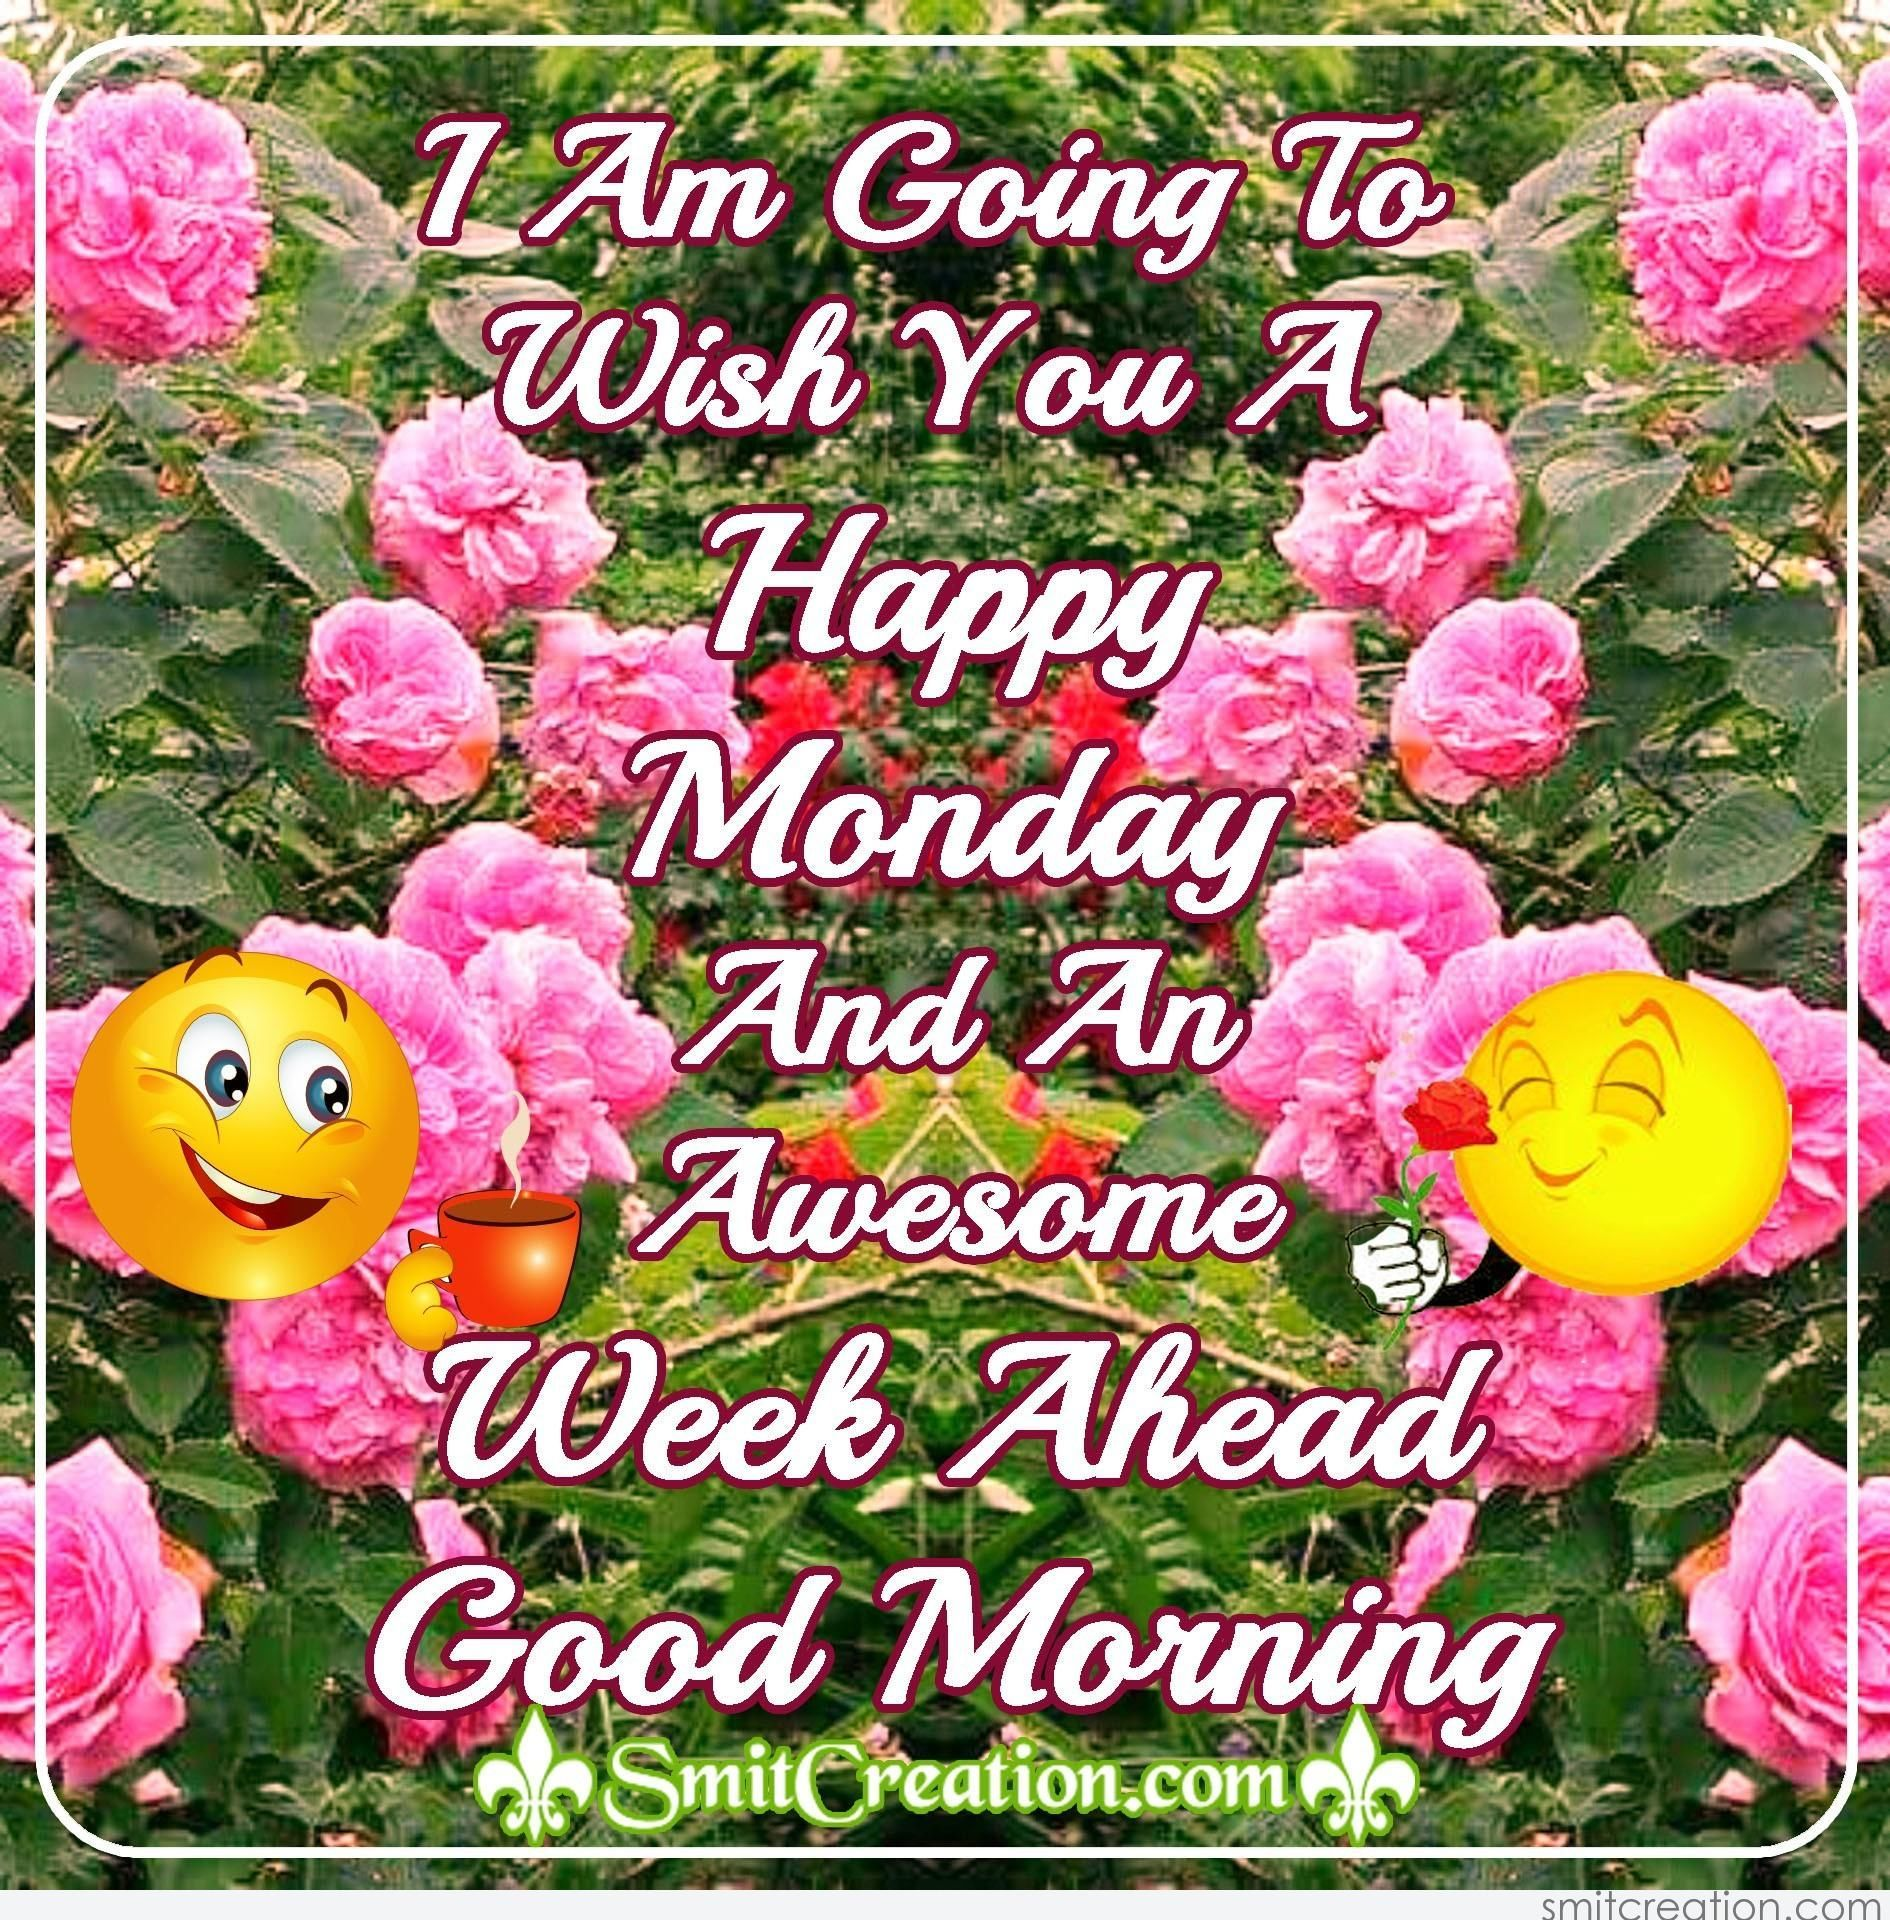 Happy Monday And Awesome Week Ahead, Good Morning Quotes